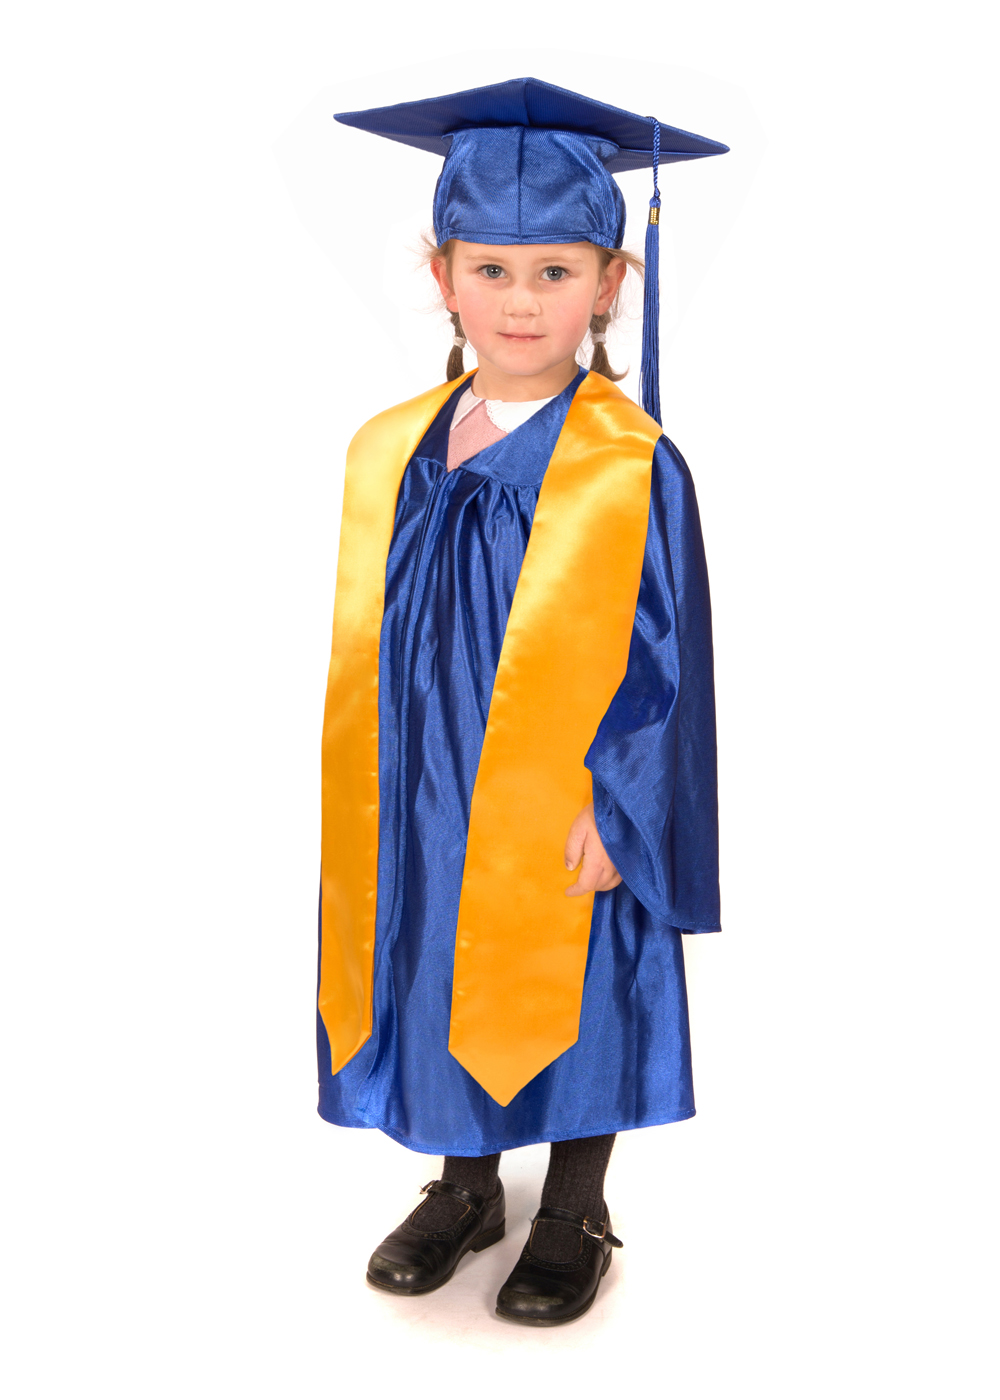 Shiny Nursery Graduation Gown, Cap & Stole - Graduation Gowns in ...